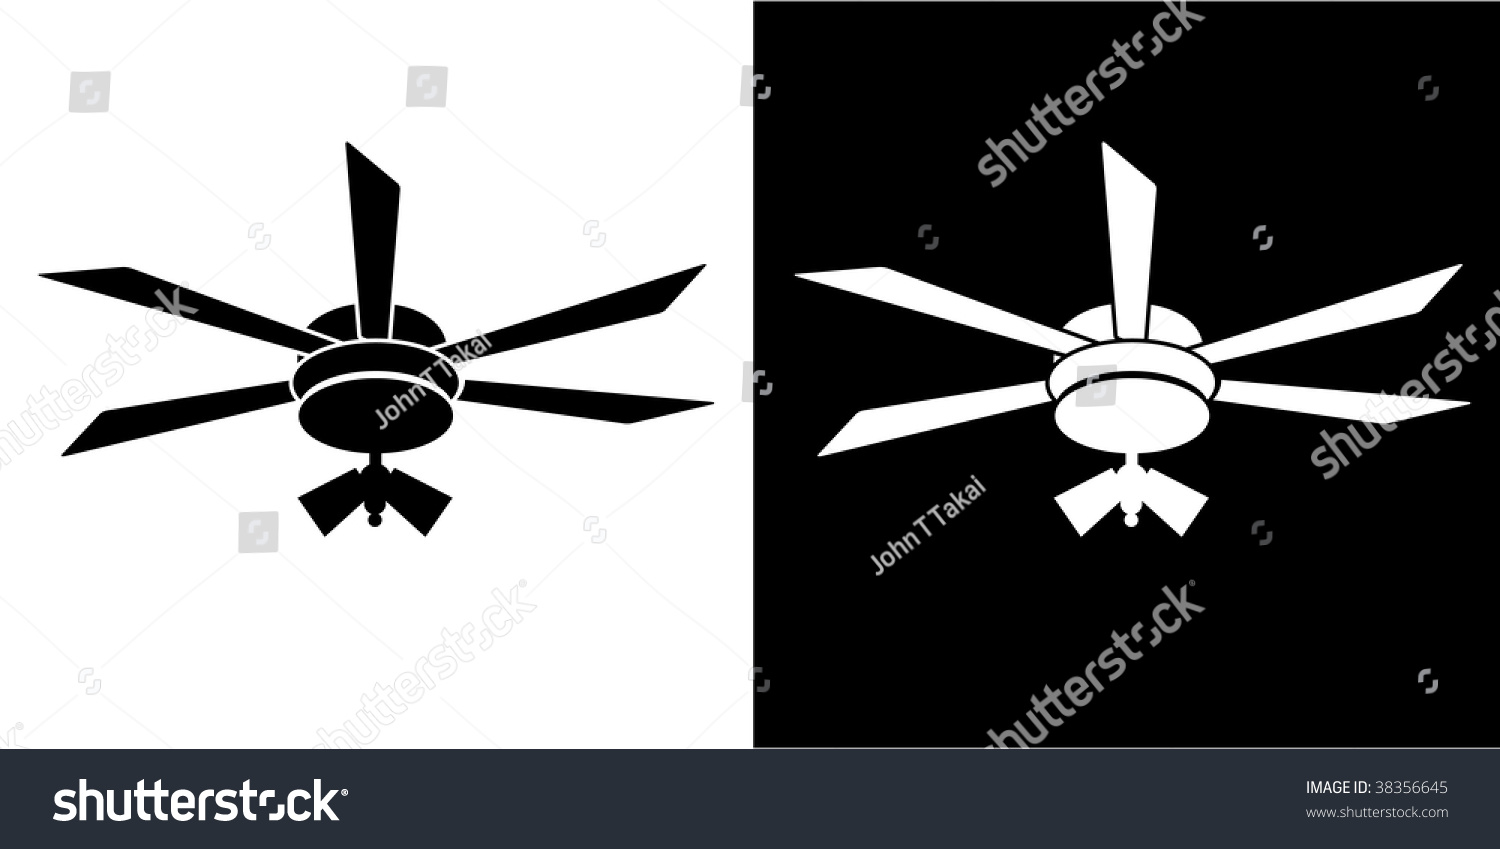 Ceiling Fan Symbol : Ceiling fan icon isolated on a white background stock